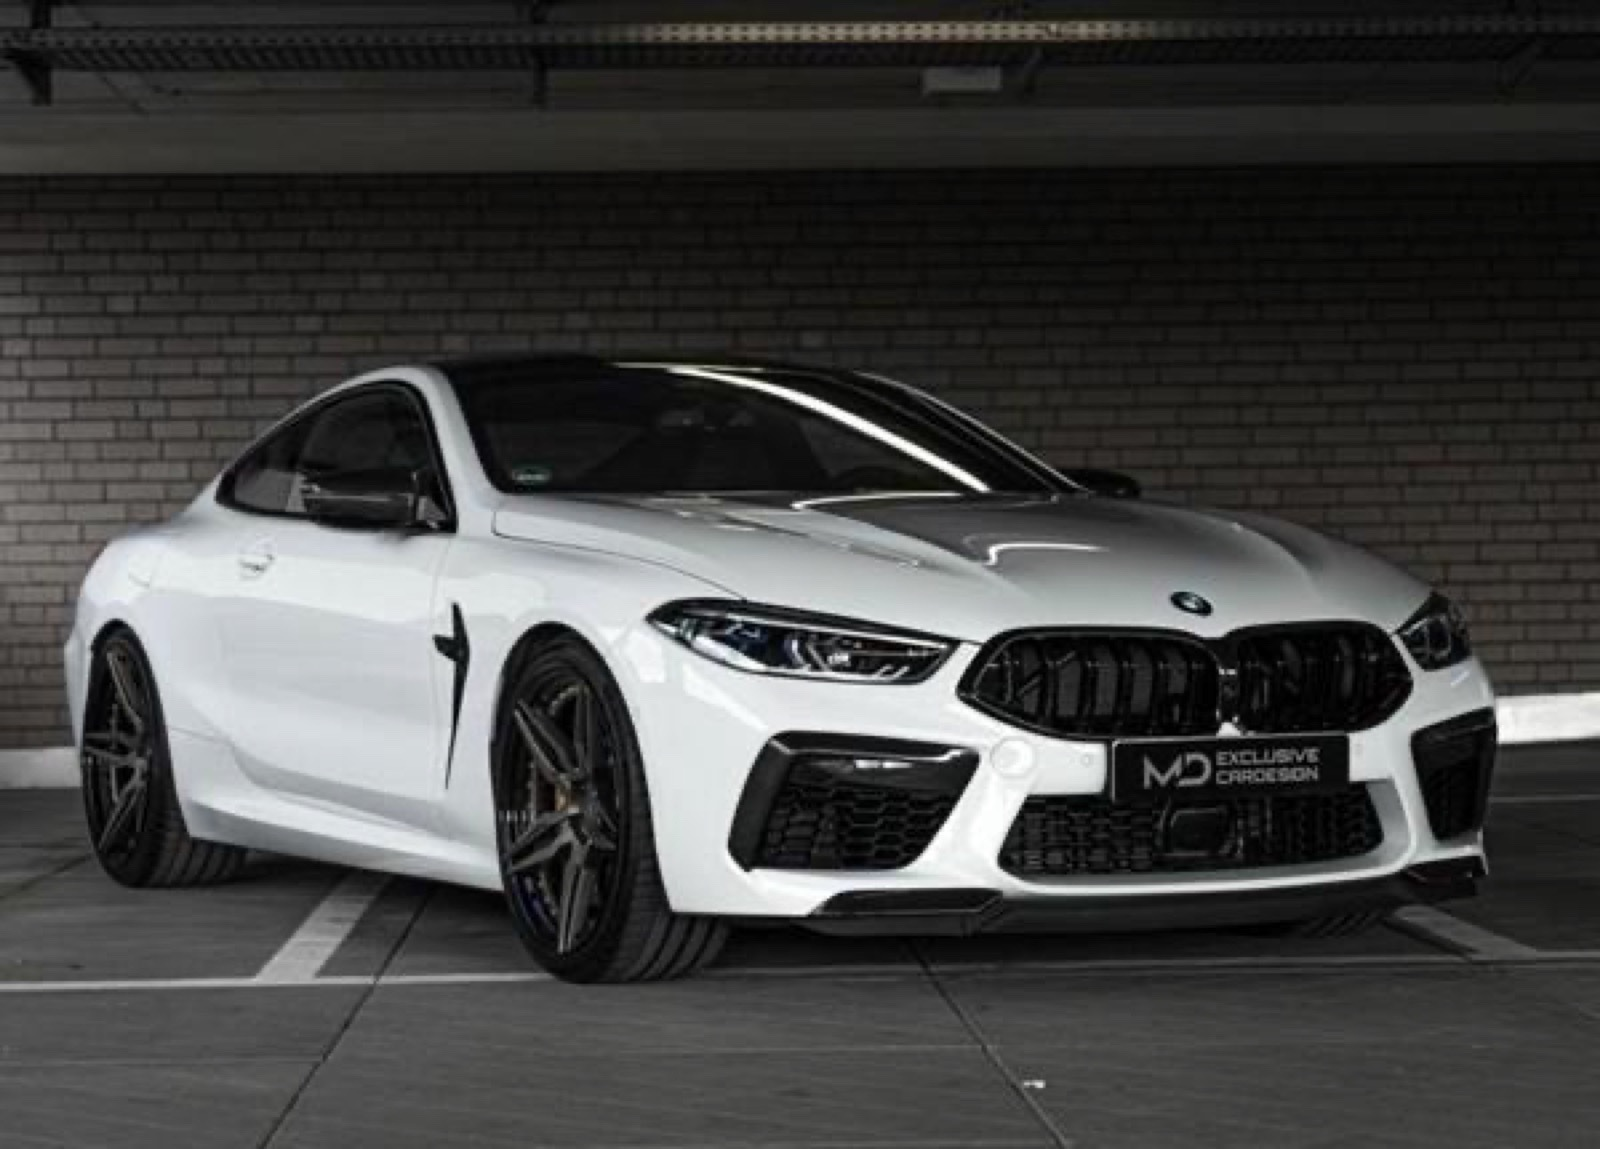 BMW_M8_MD_Exclusive_Cardesign-0005